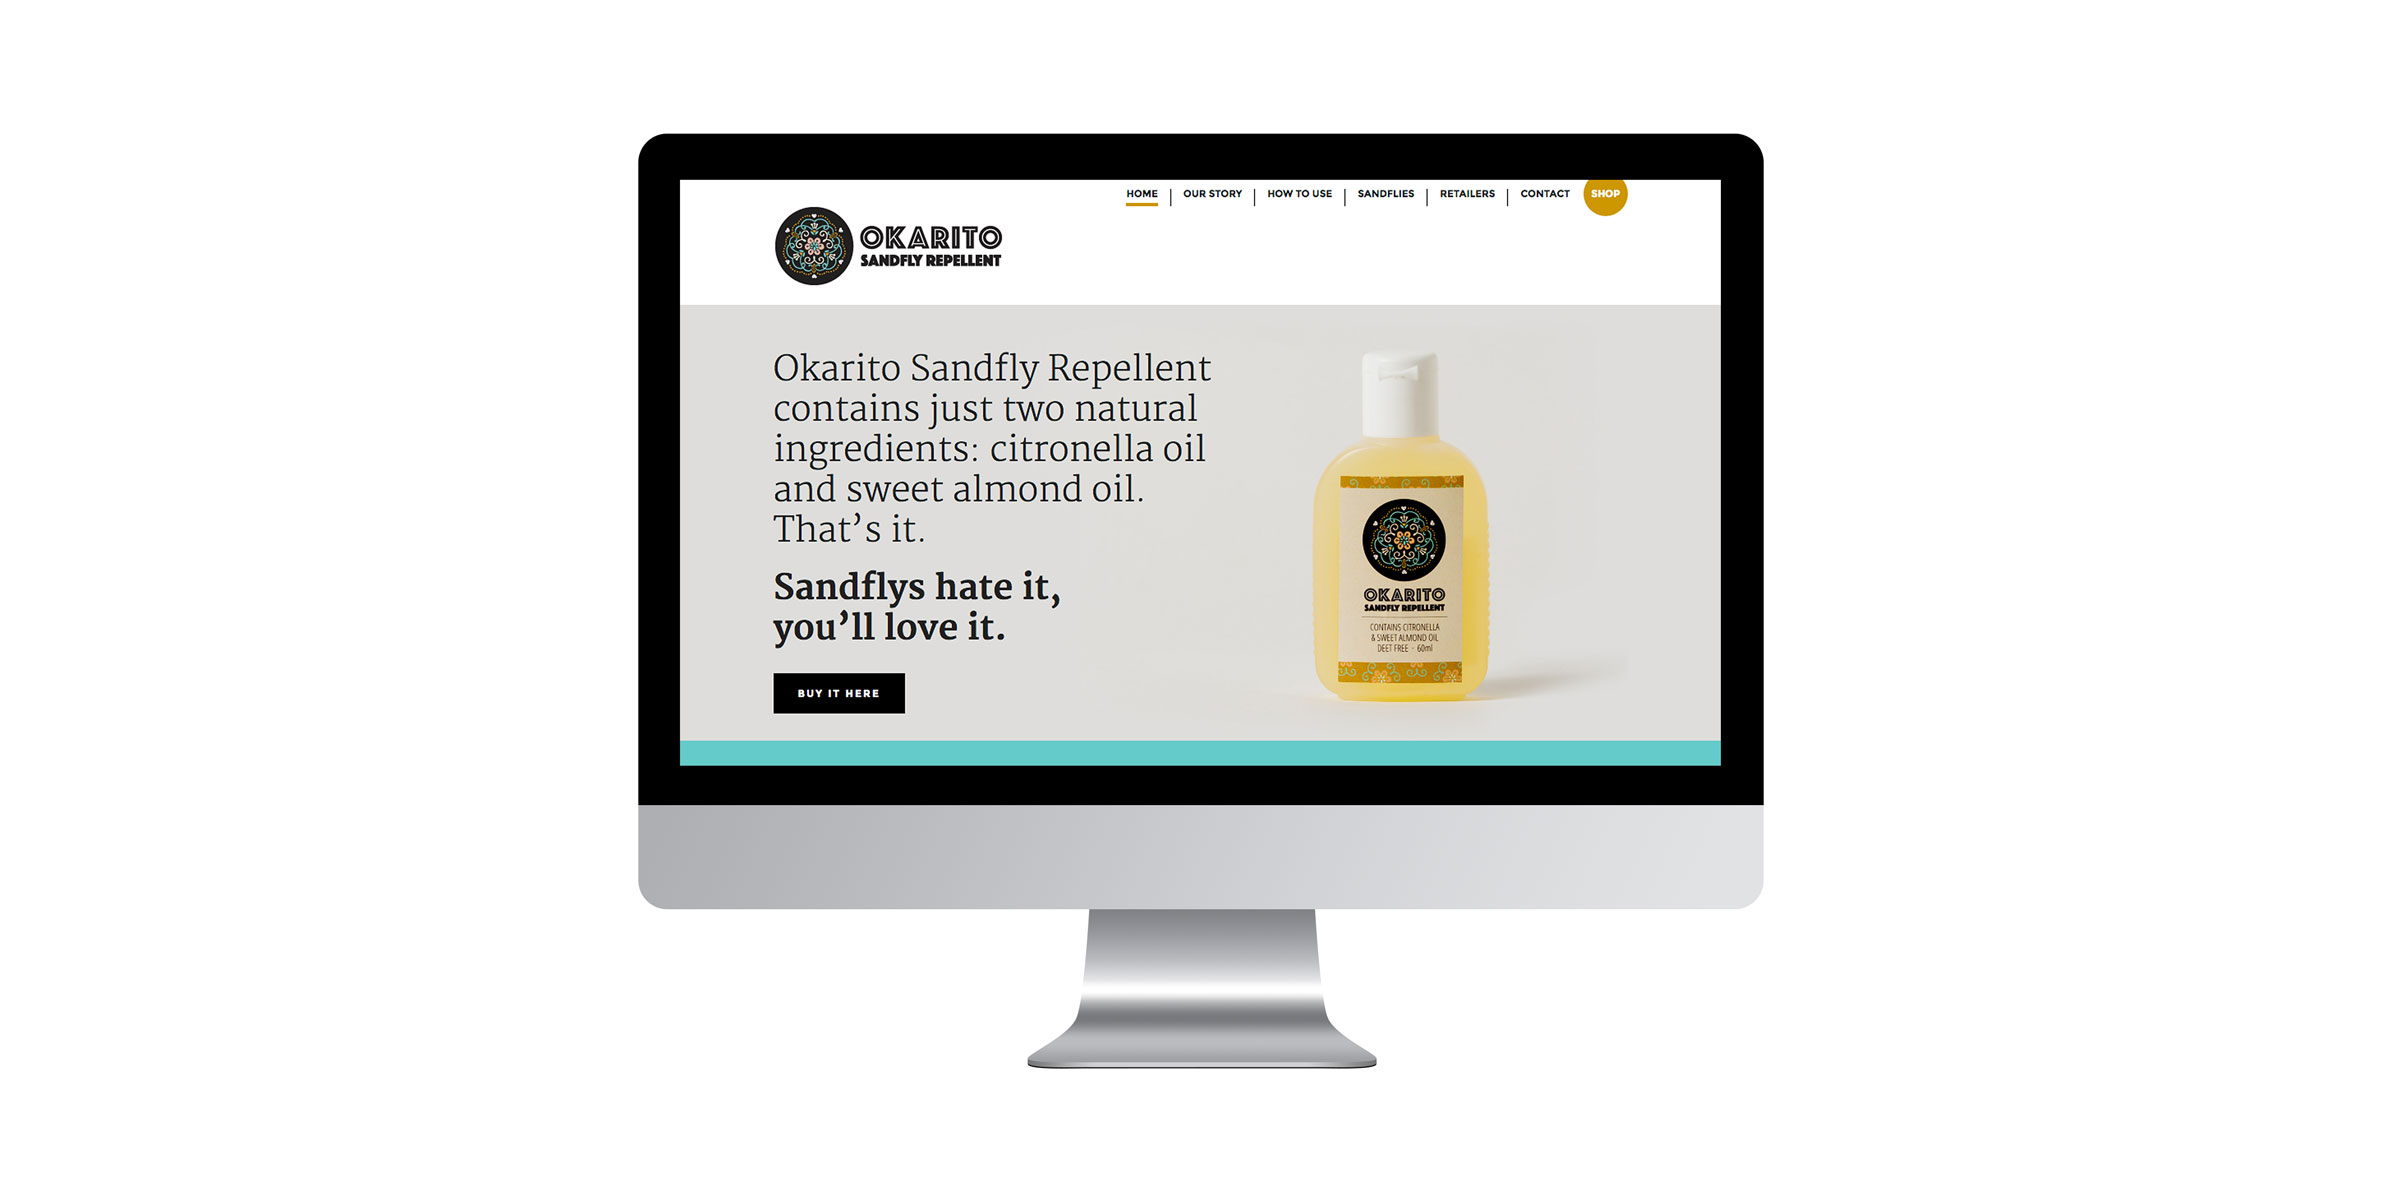 Okarito Sandfly Repellent | Web design